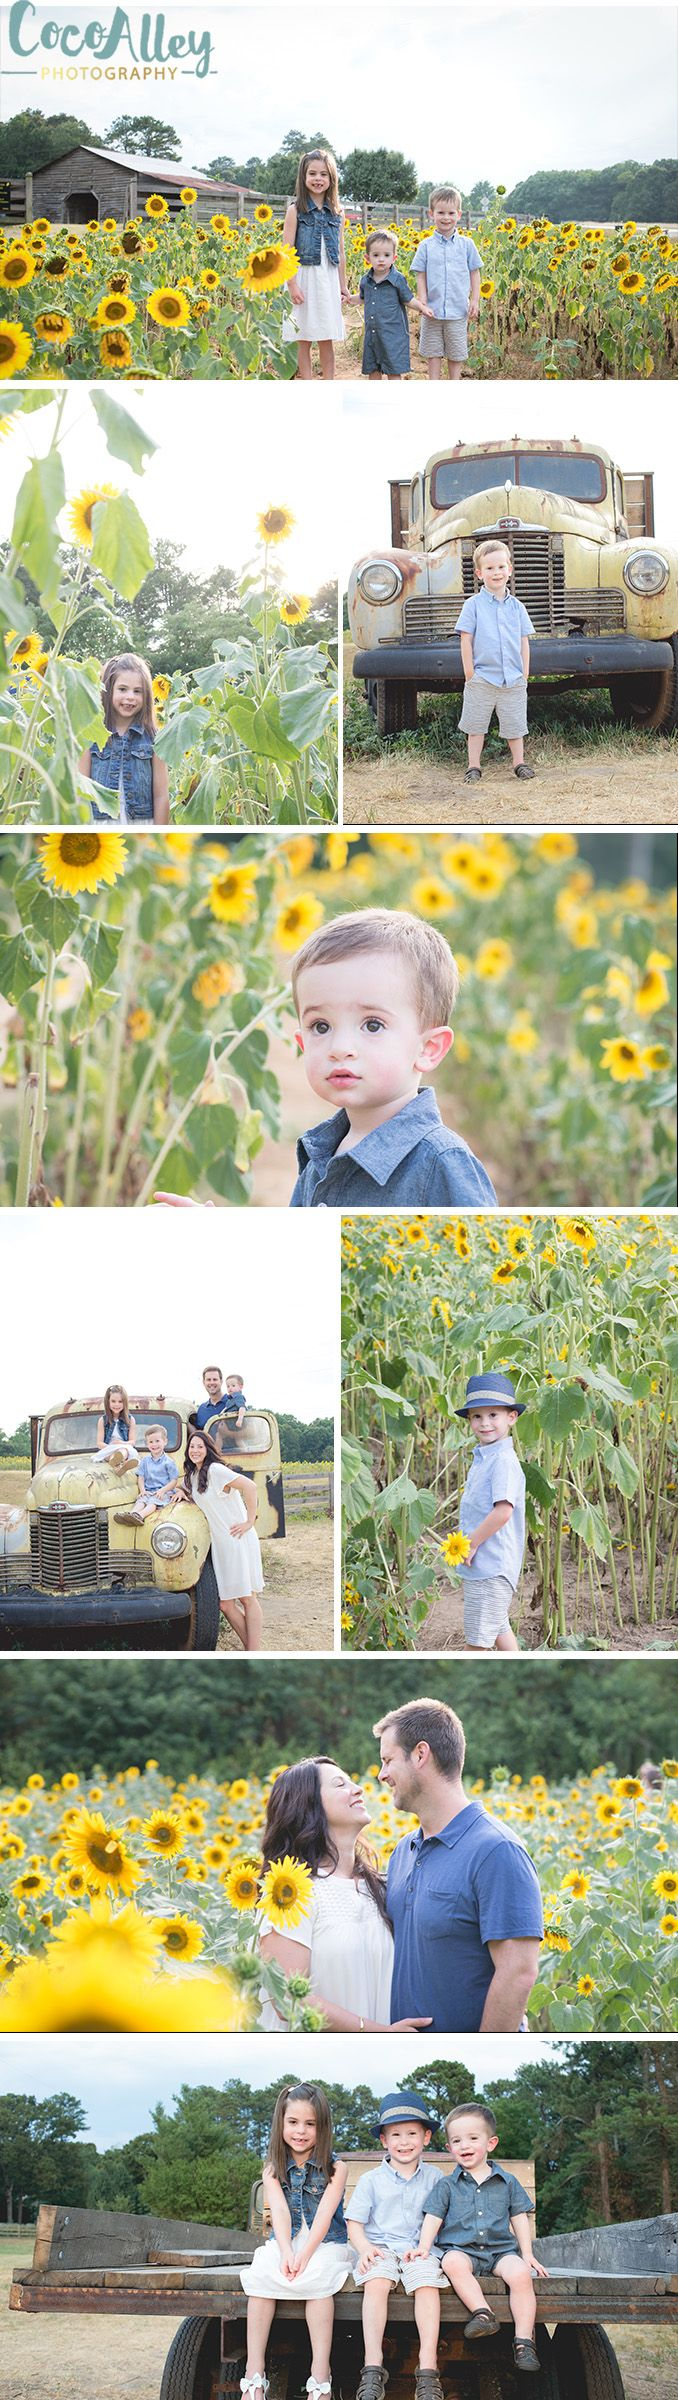 What a beautiful session in the sunflower fields! Sunflowers add a great pop of color to an outdoor photoshoot | sunflower family portraits | sunflower photo ideas |